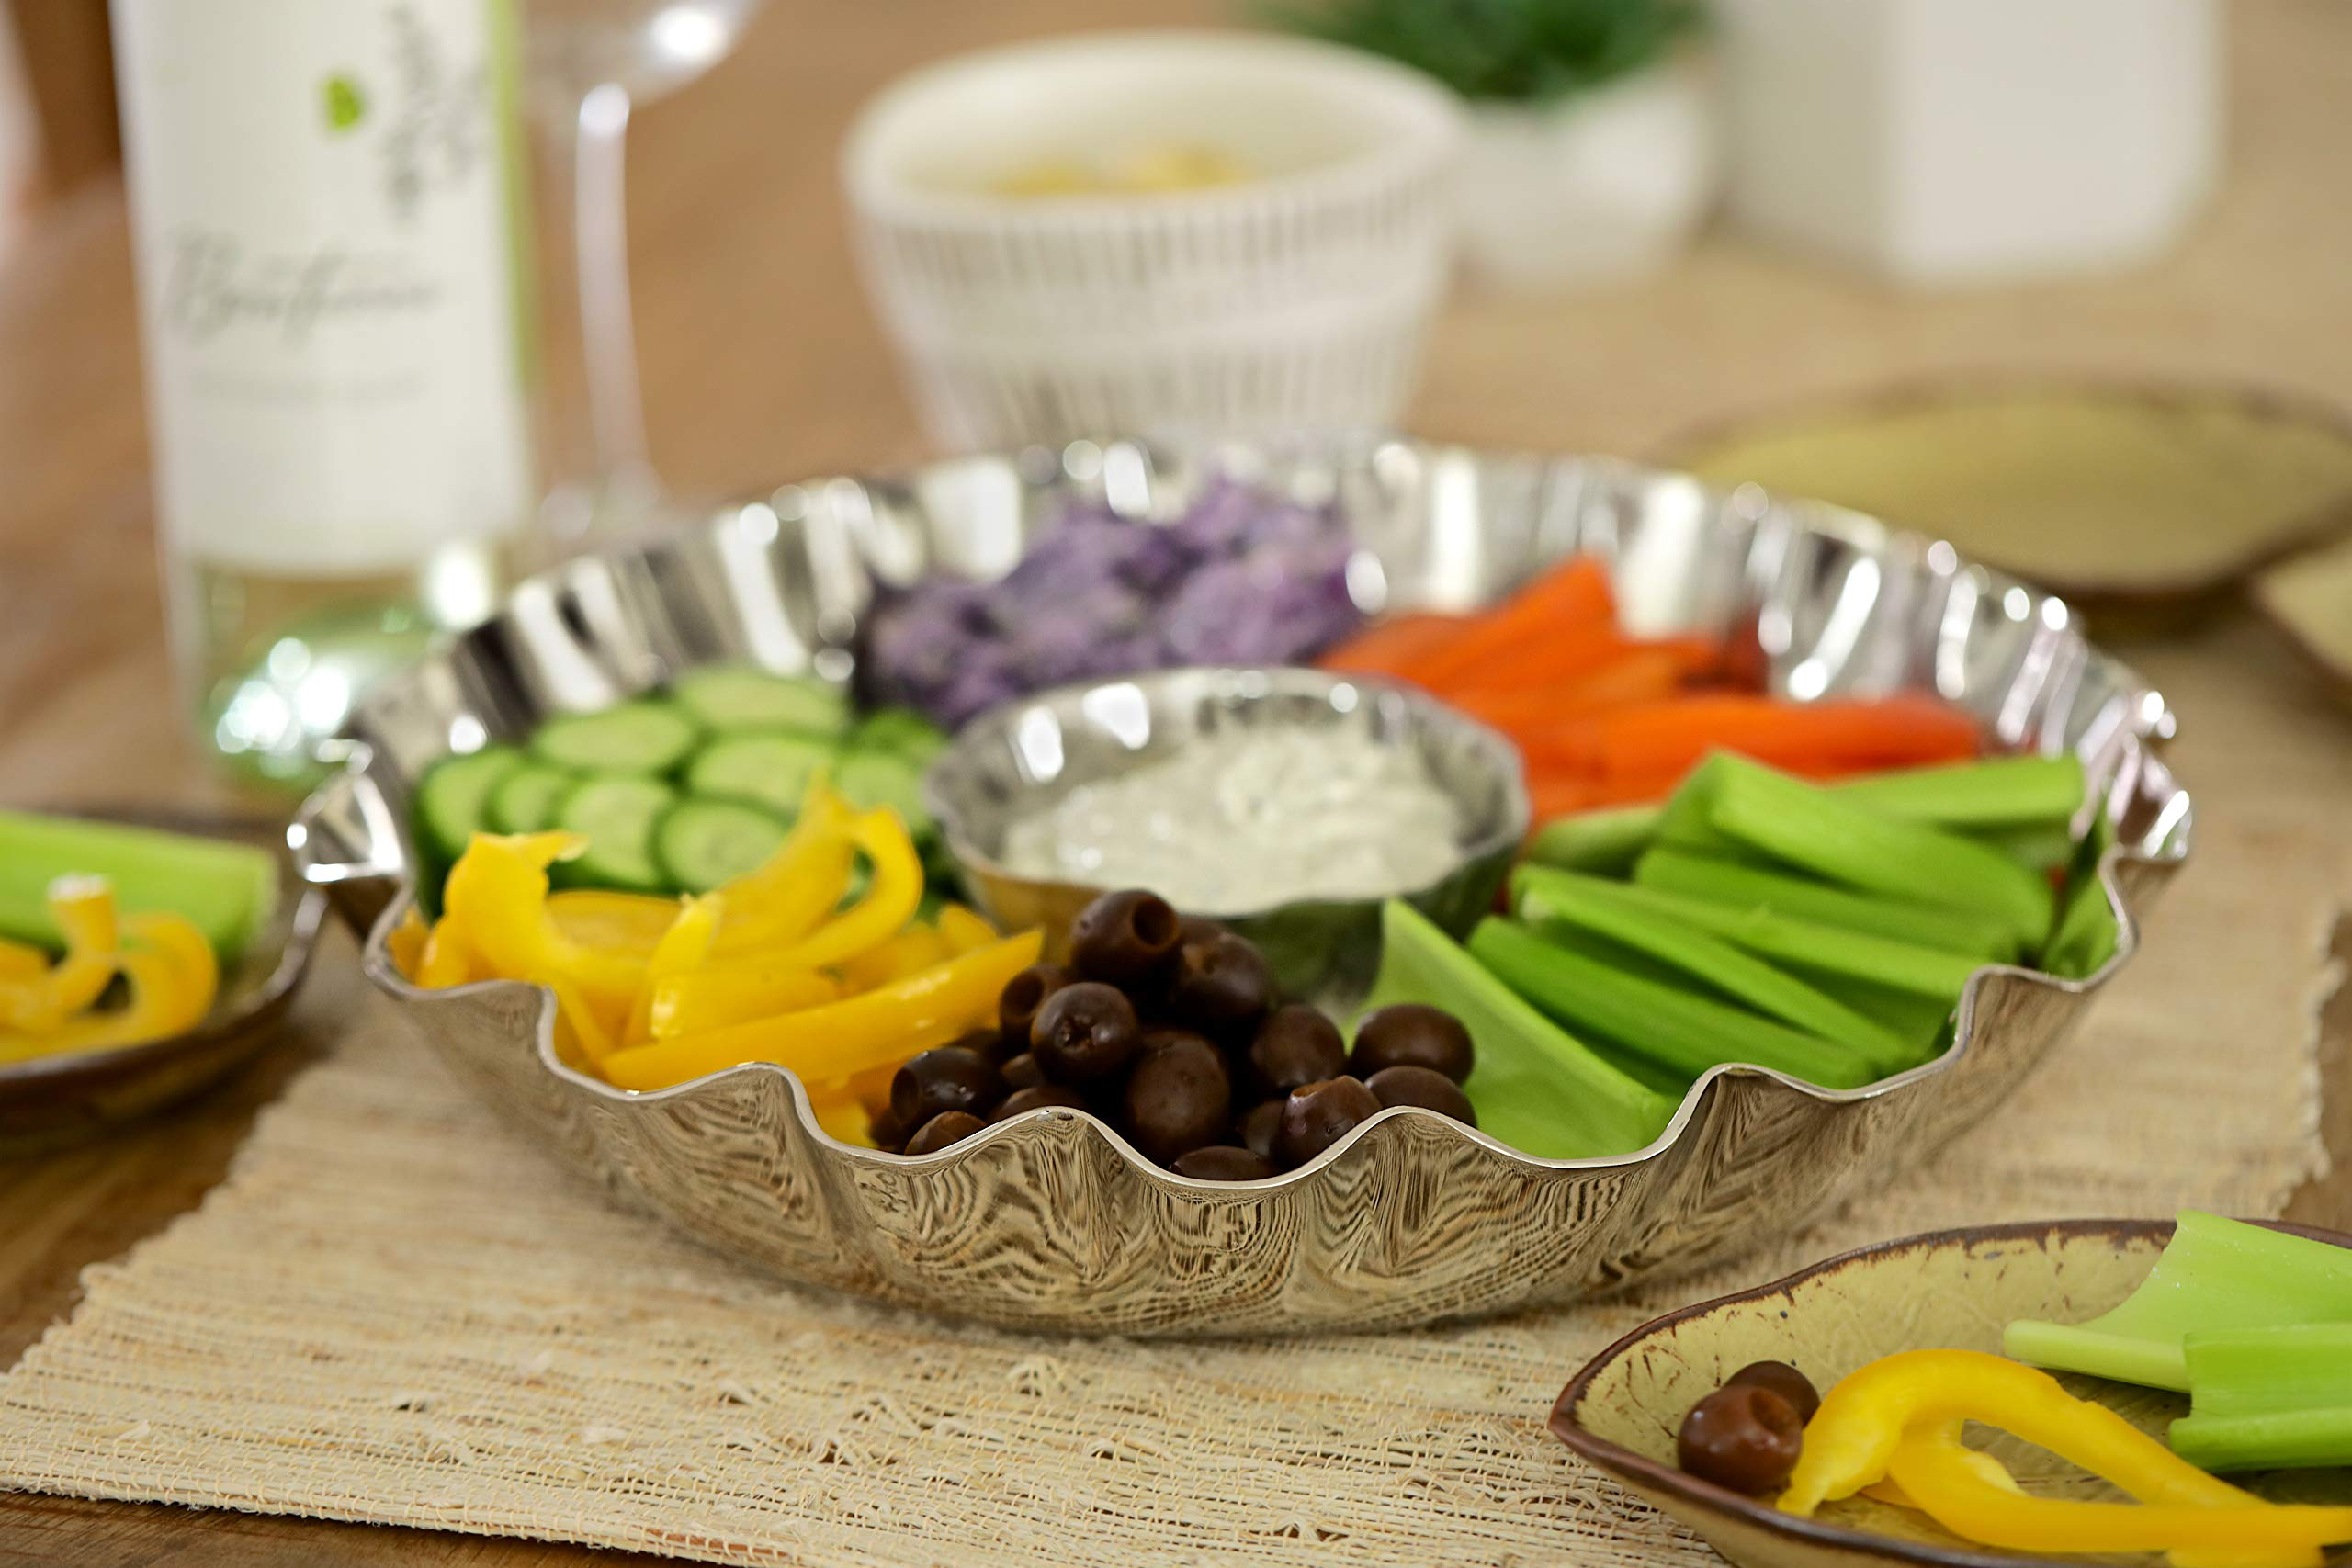 Elegant 2 Piece Stainless Steel Chip And Dip Platter - Party Serving Bowl - Ideal For Chips And Salsa Appetizers, Salad, Party Bowl, Relish Dish,